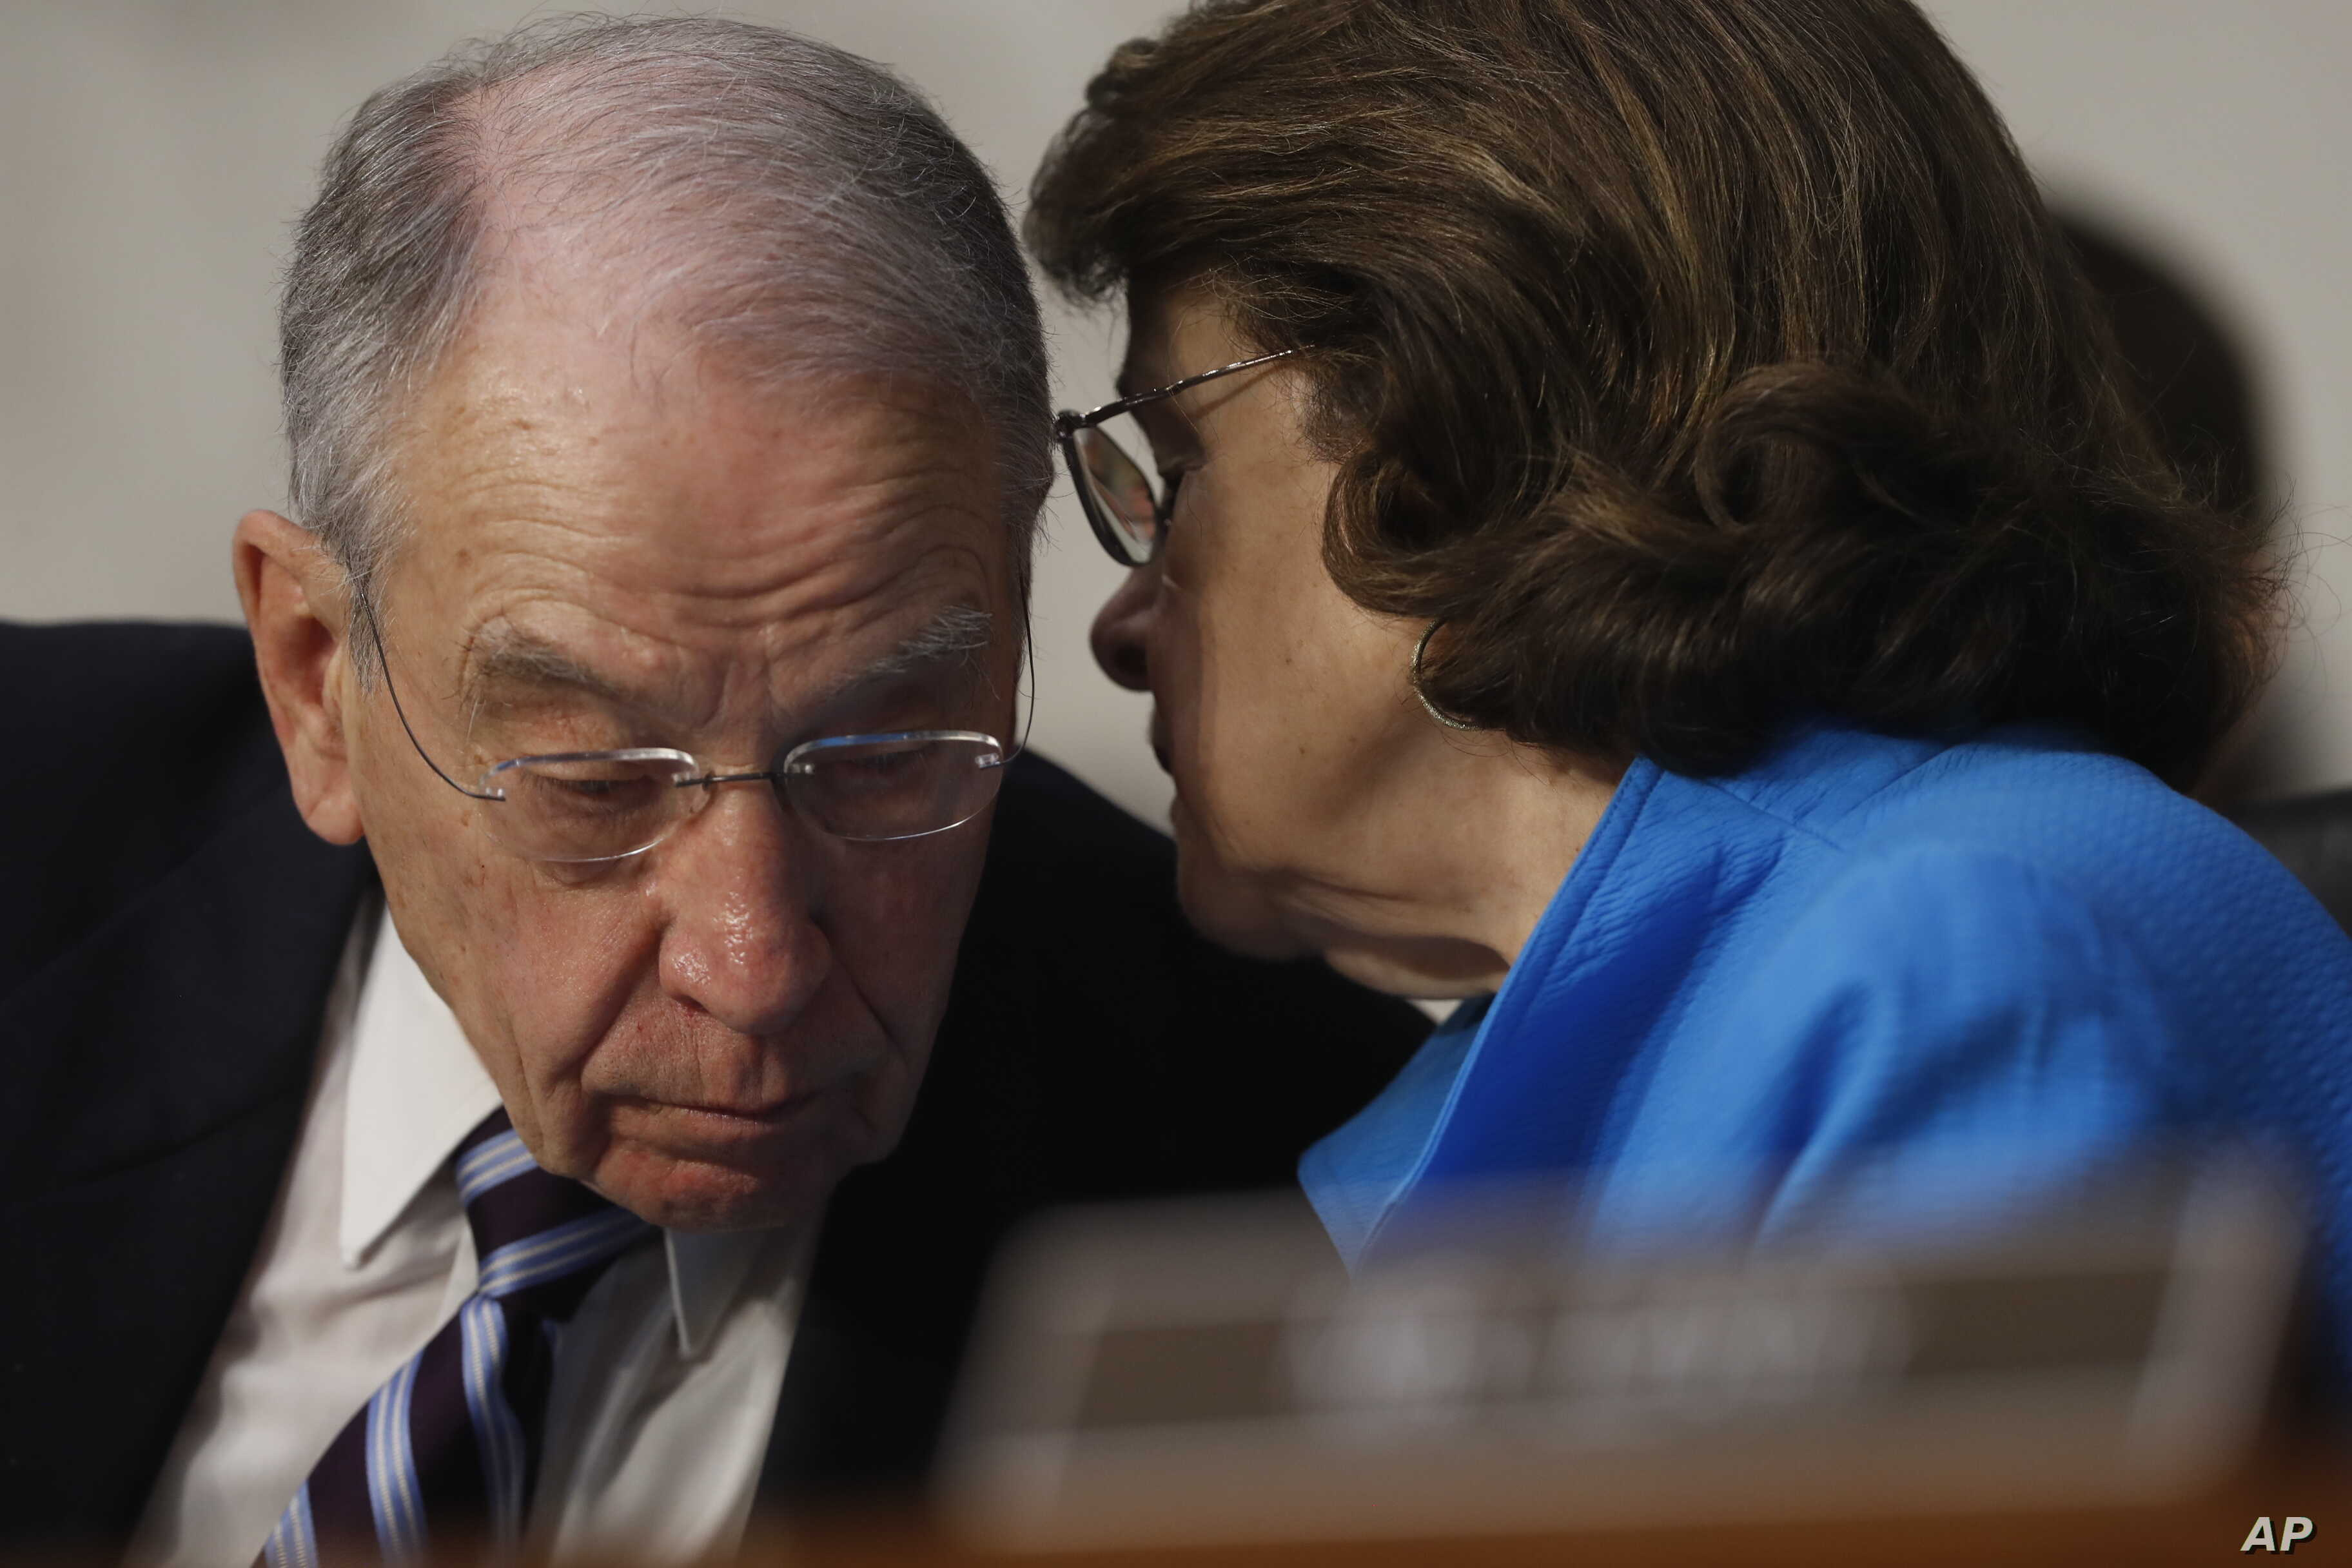 Senate Judiciary Committee Chairman Sen. Charles Grassley, R-Iowa, confers with the committee's ranking member Sen. Dianne Feinstein, D-Calif., on Capitol Hill in Washington, March 20, 2017, during the committee's confirmation hearing for Supreme Co...